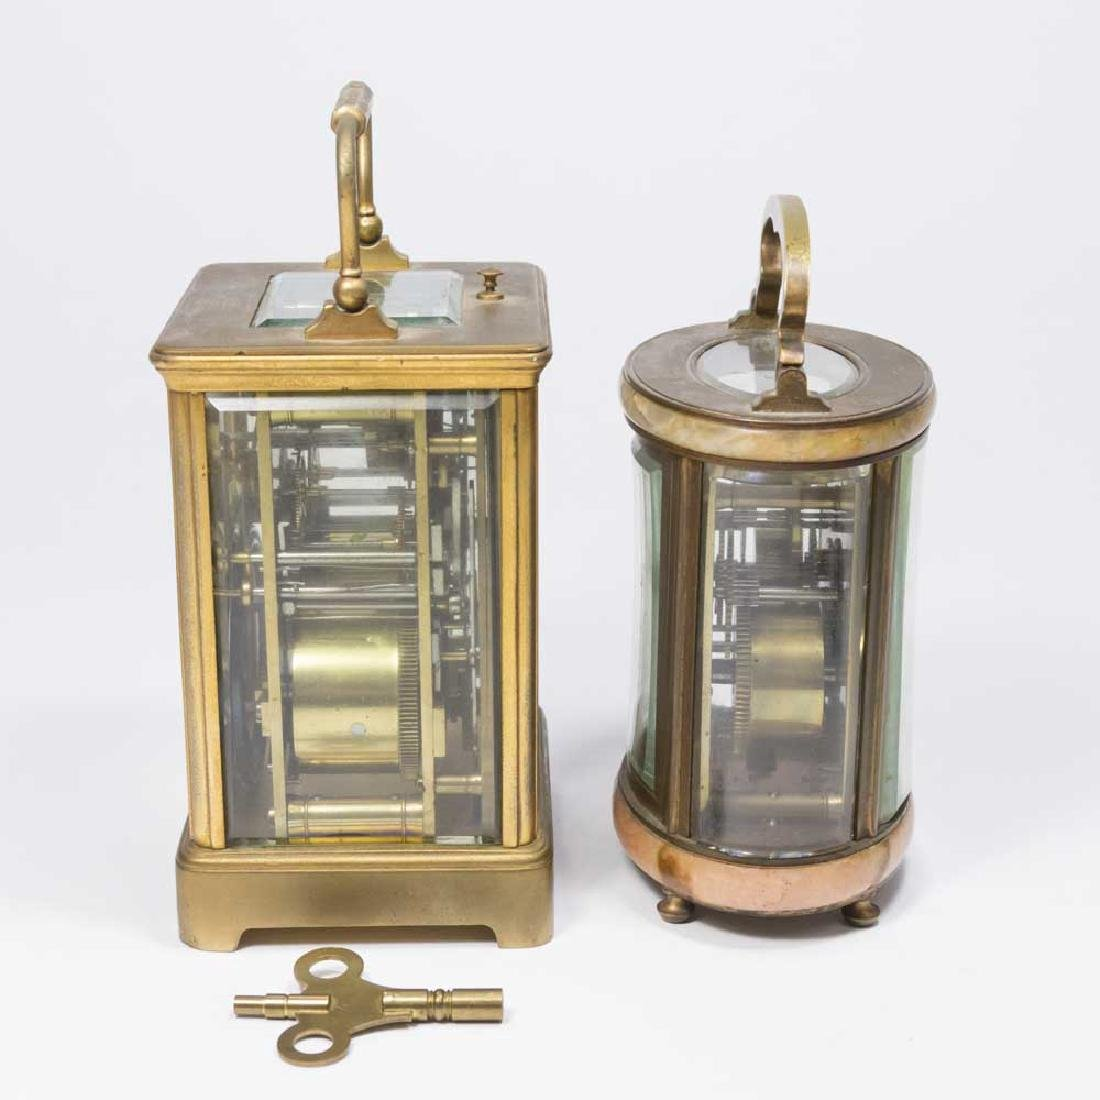 2 Carriage Clocks, Oval Caldwell & Other - 4